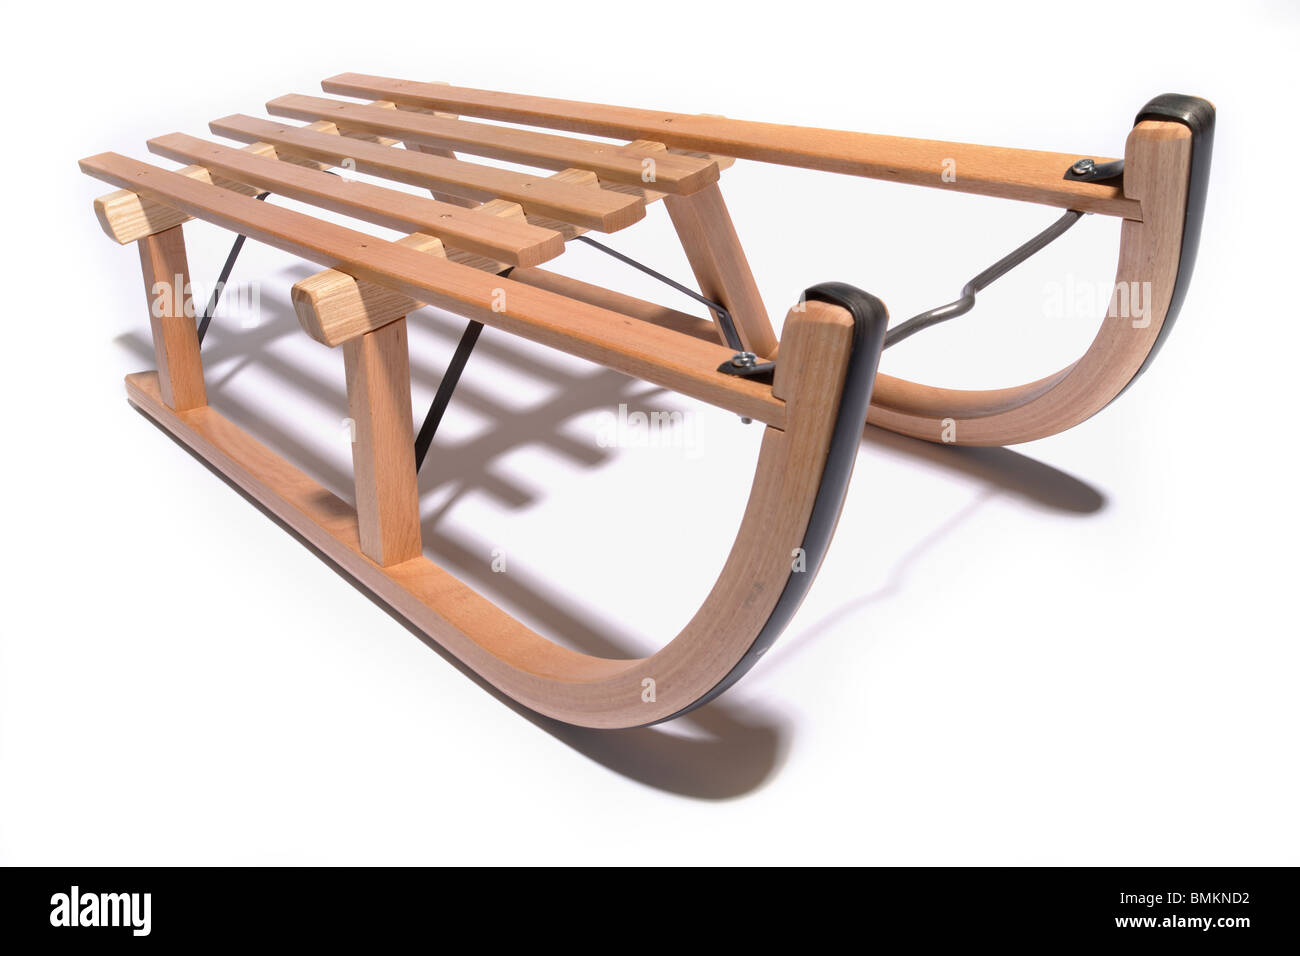 a sled or sledge on a white background - Stock Image